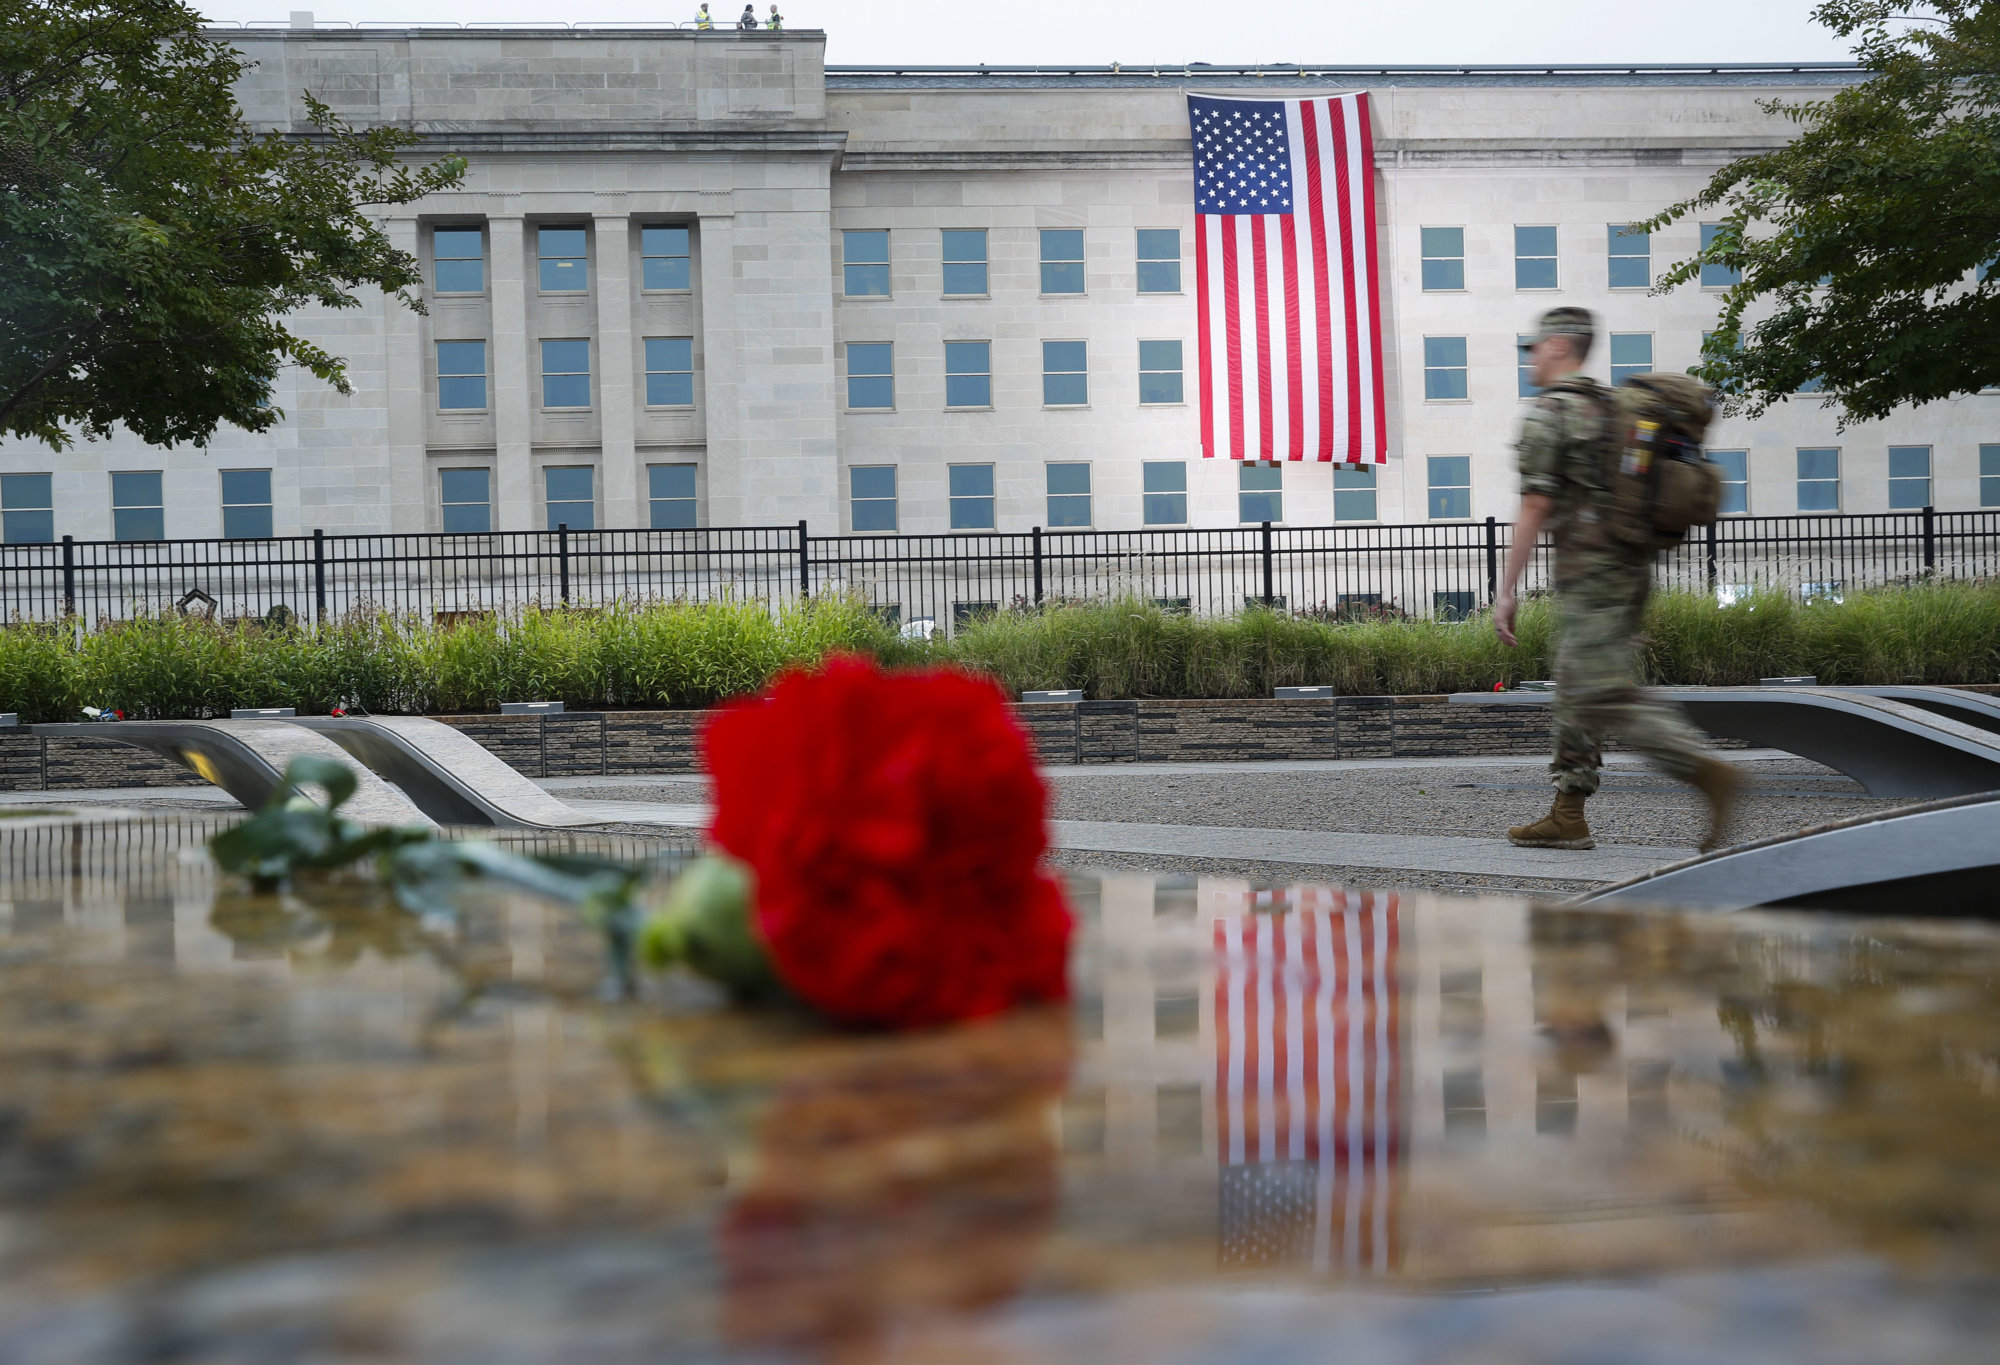 PHOTOS: US remembers Sept. 11